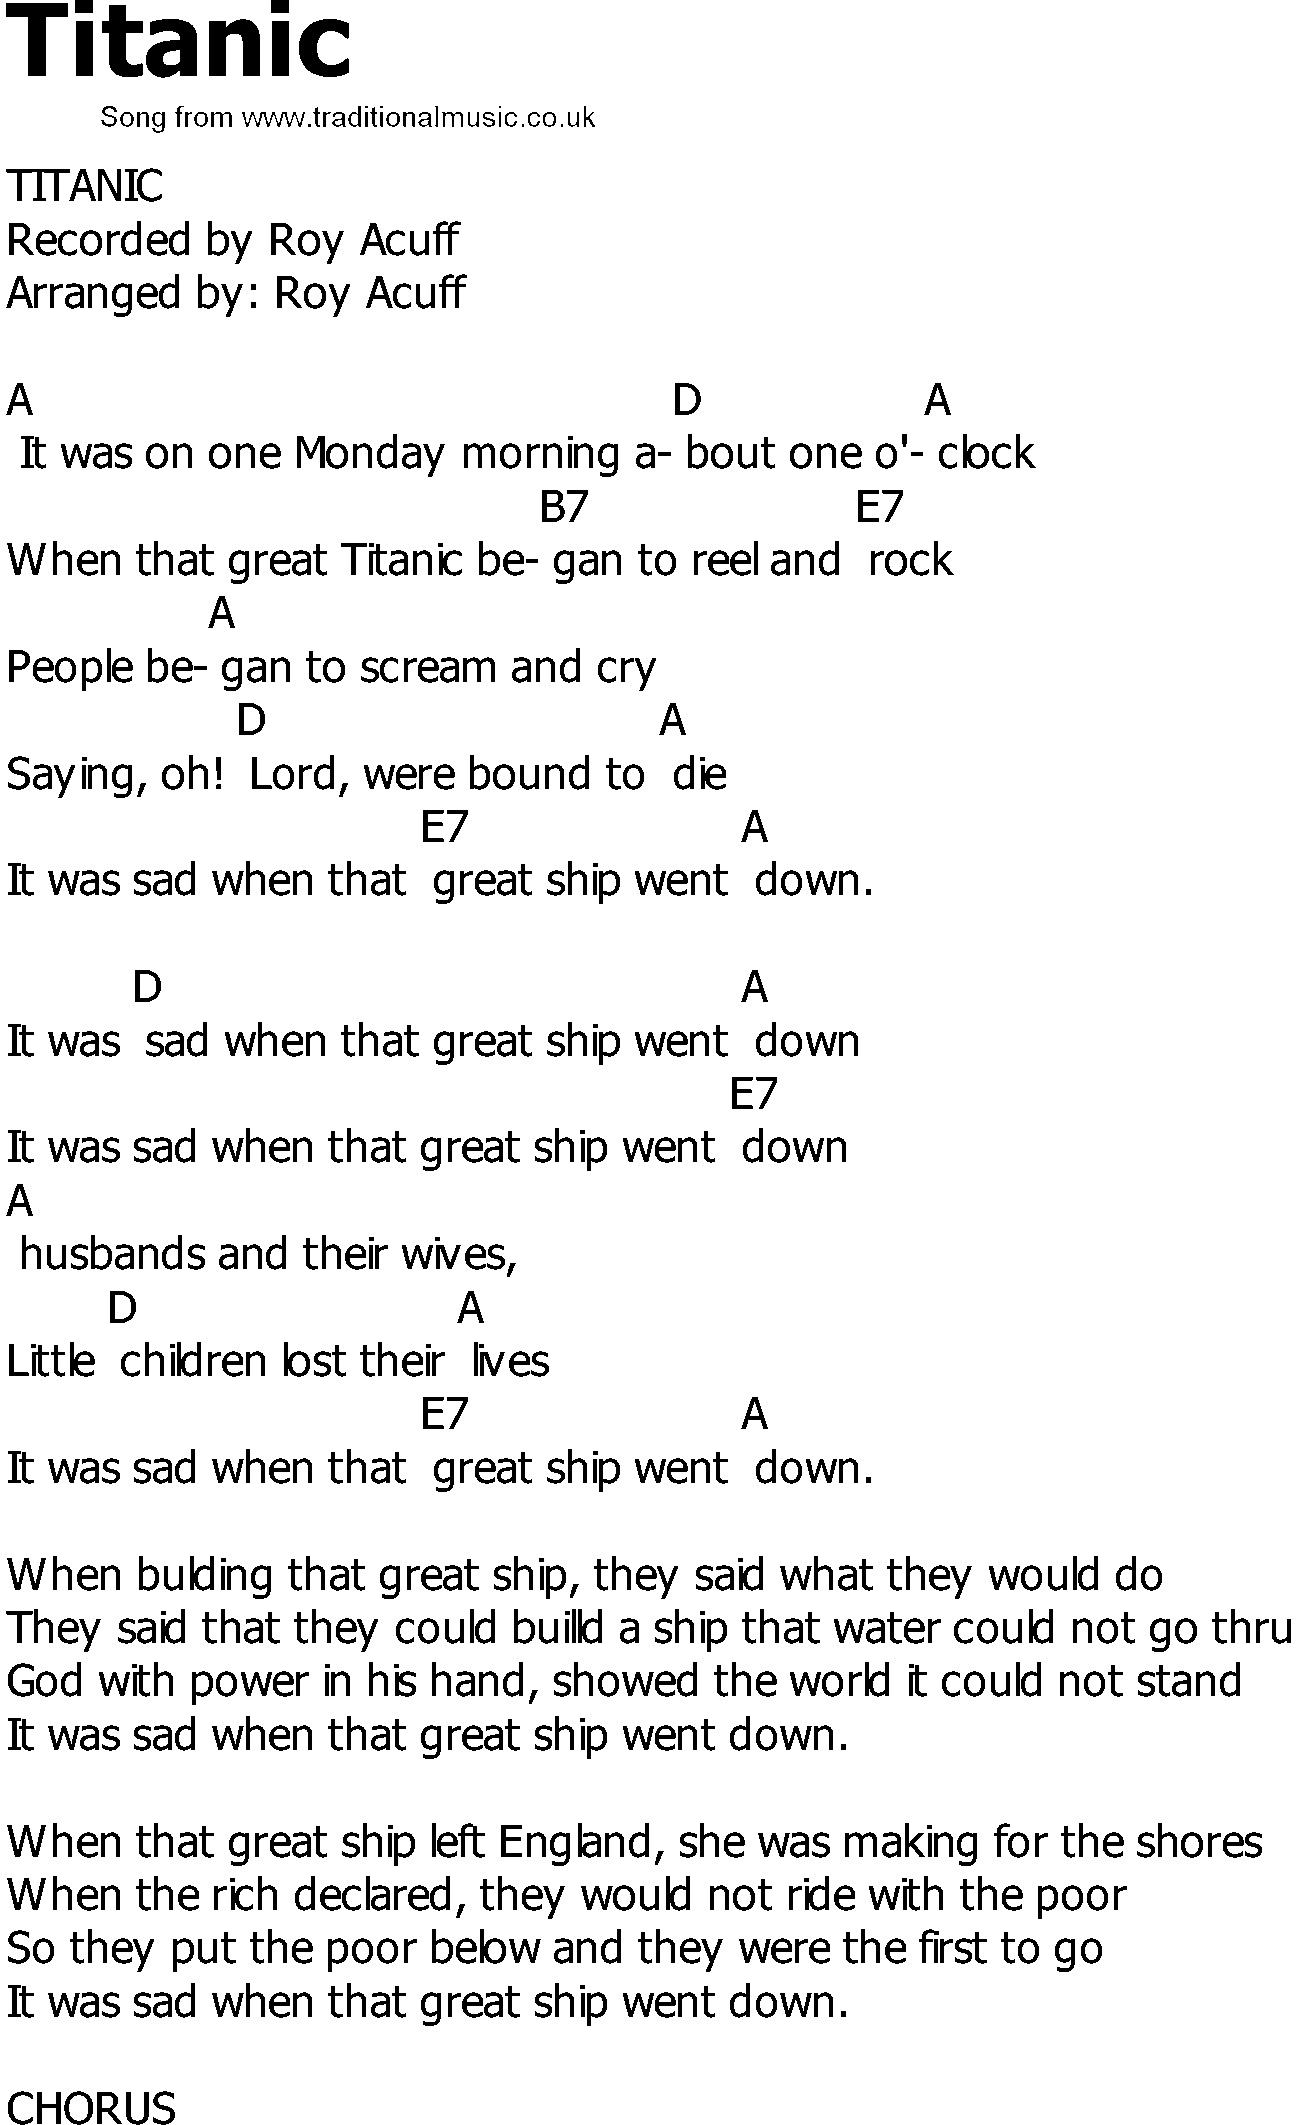 Old Country song lyrics with chords - Titanic